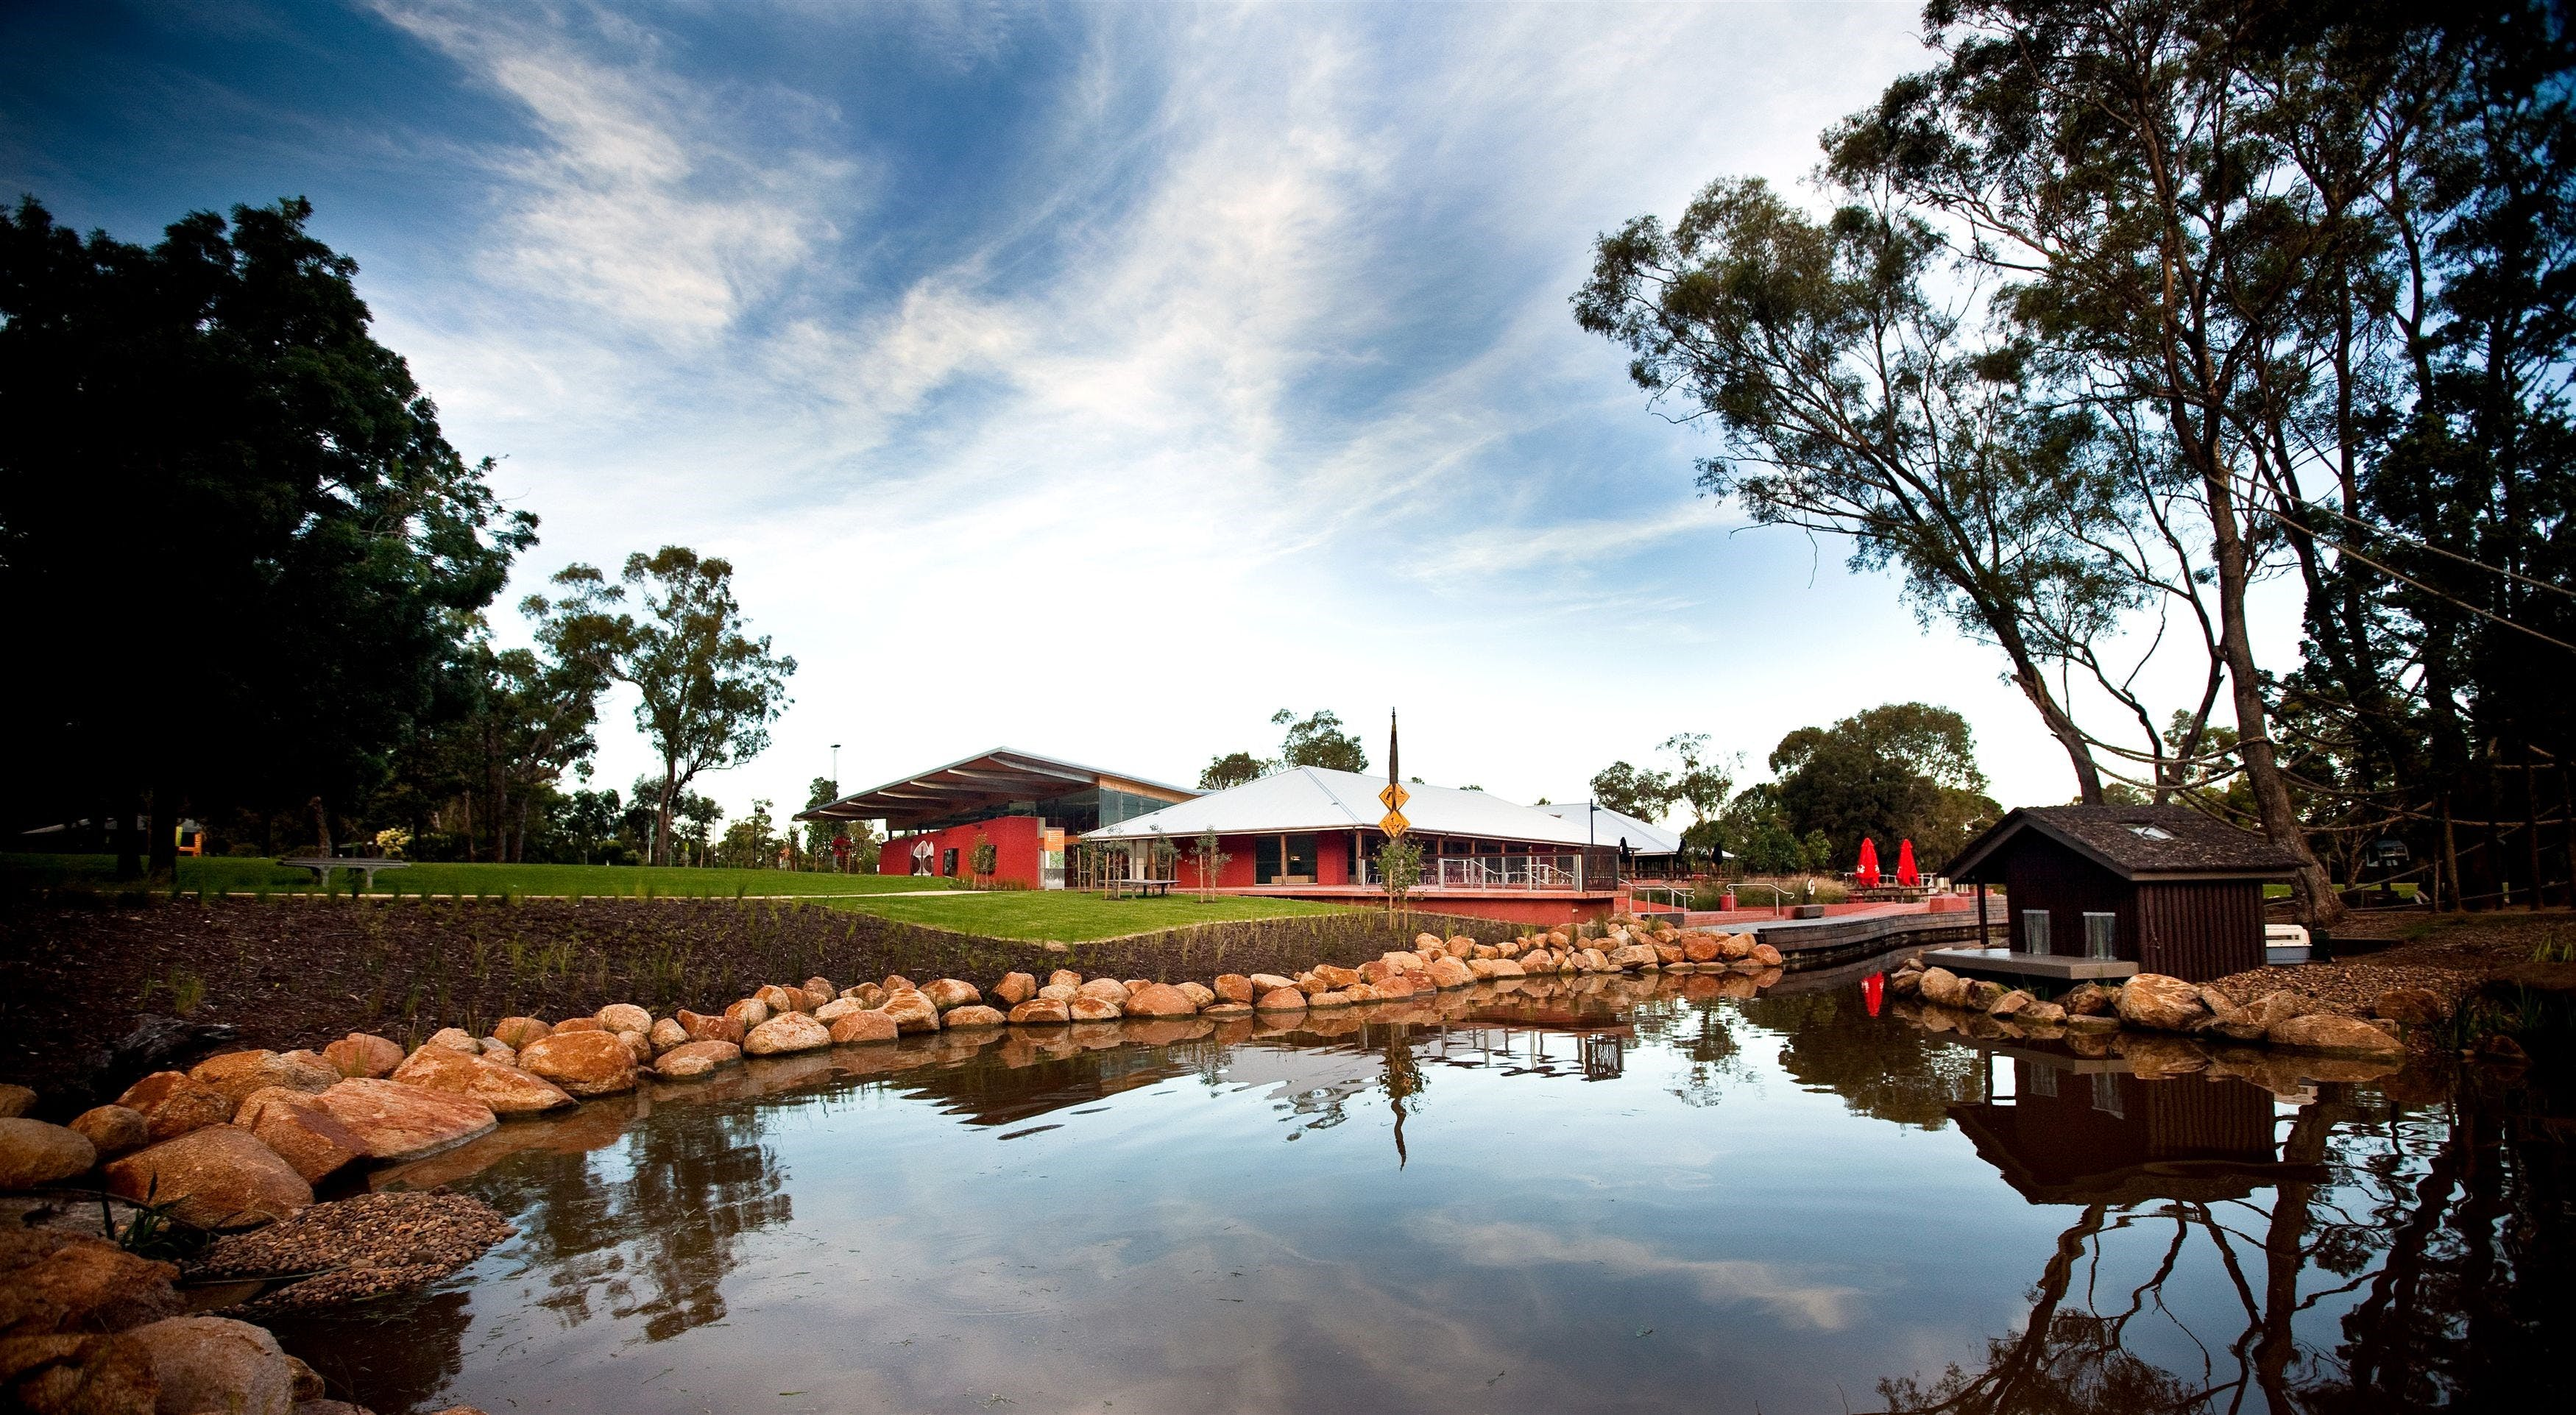 Savannah Visitor Plaza Taronga Western Plains Zoo Dubbo - Lismore Accommodation